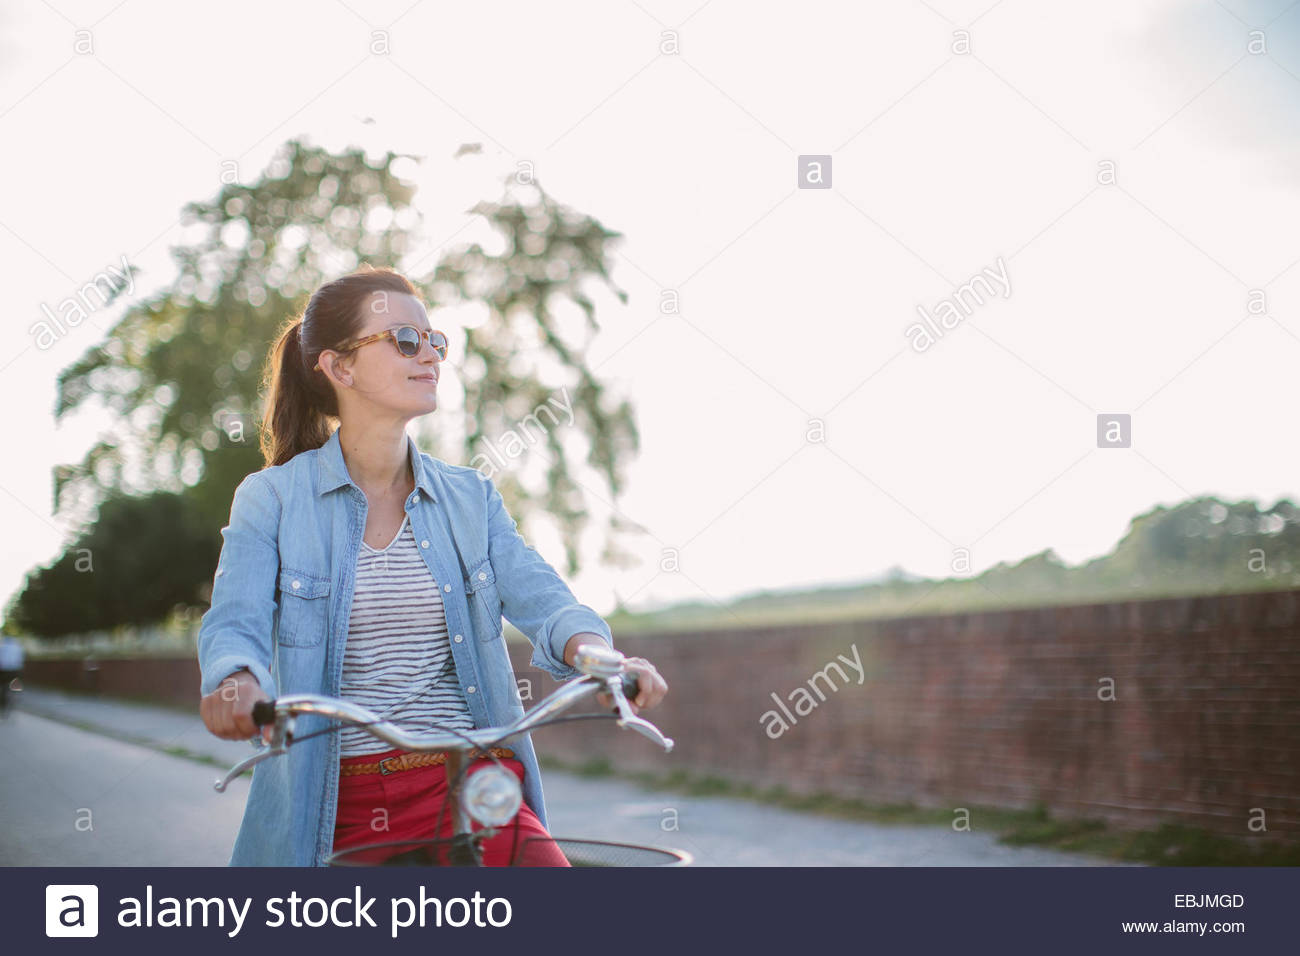 Mid adult woman pushing bicycle on rural road, Tuscany, Italy - Stock Image